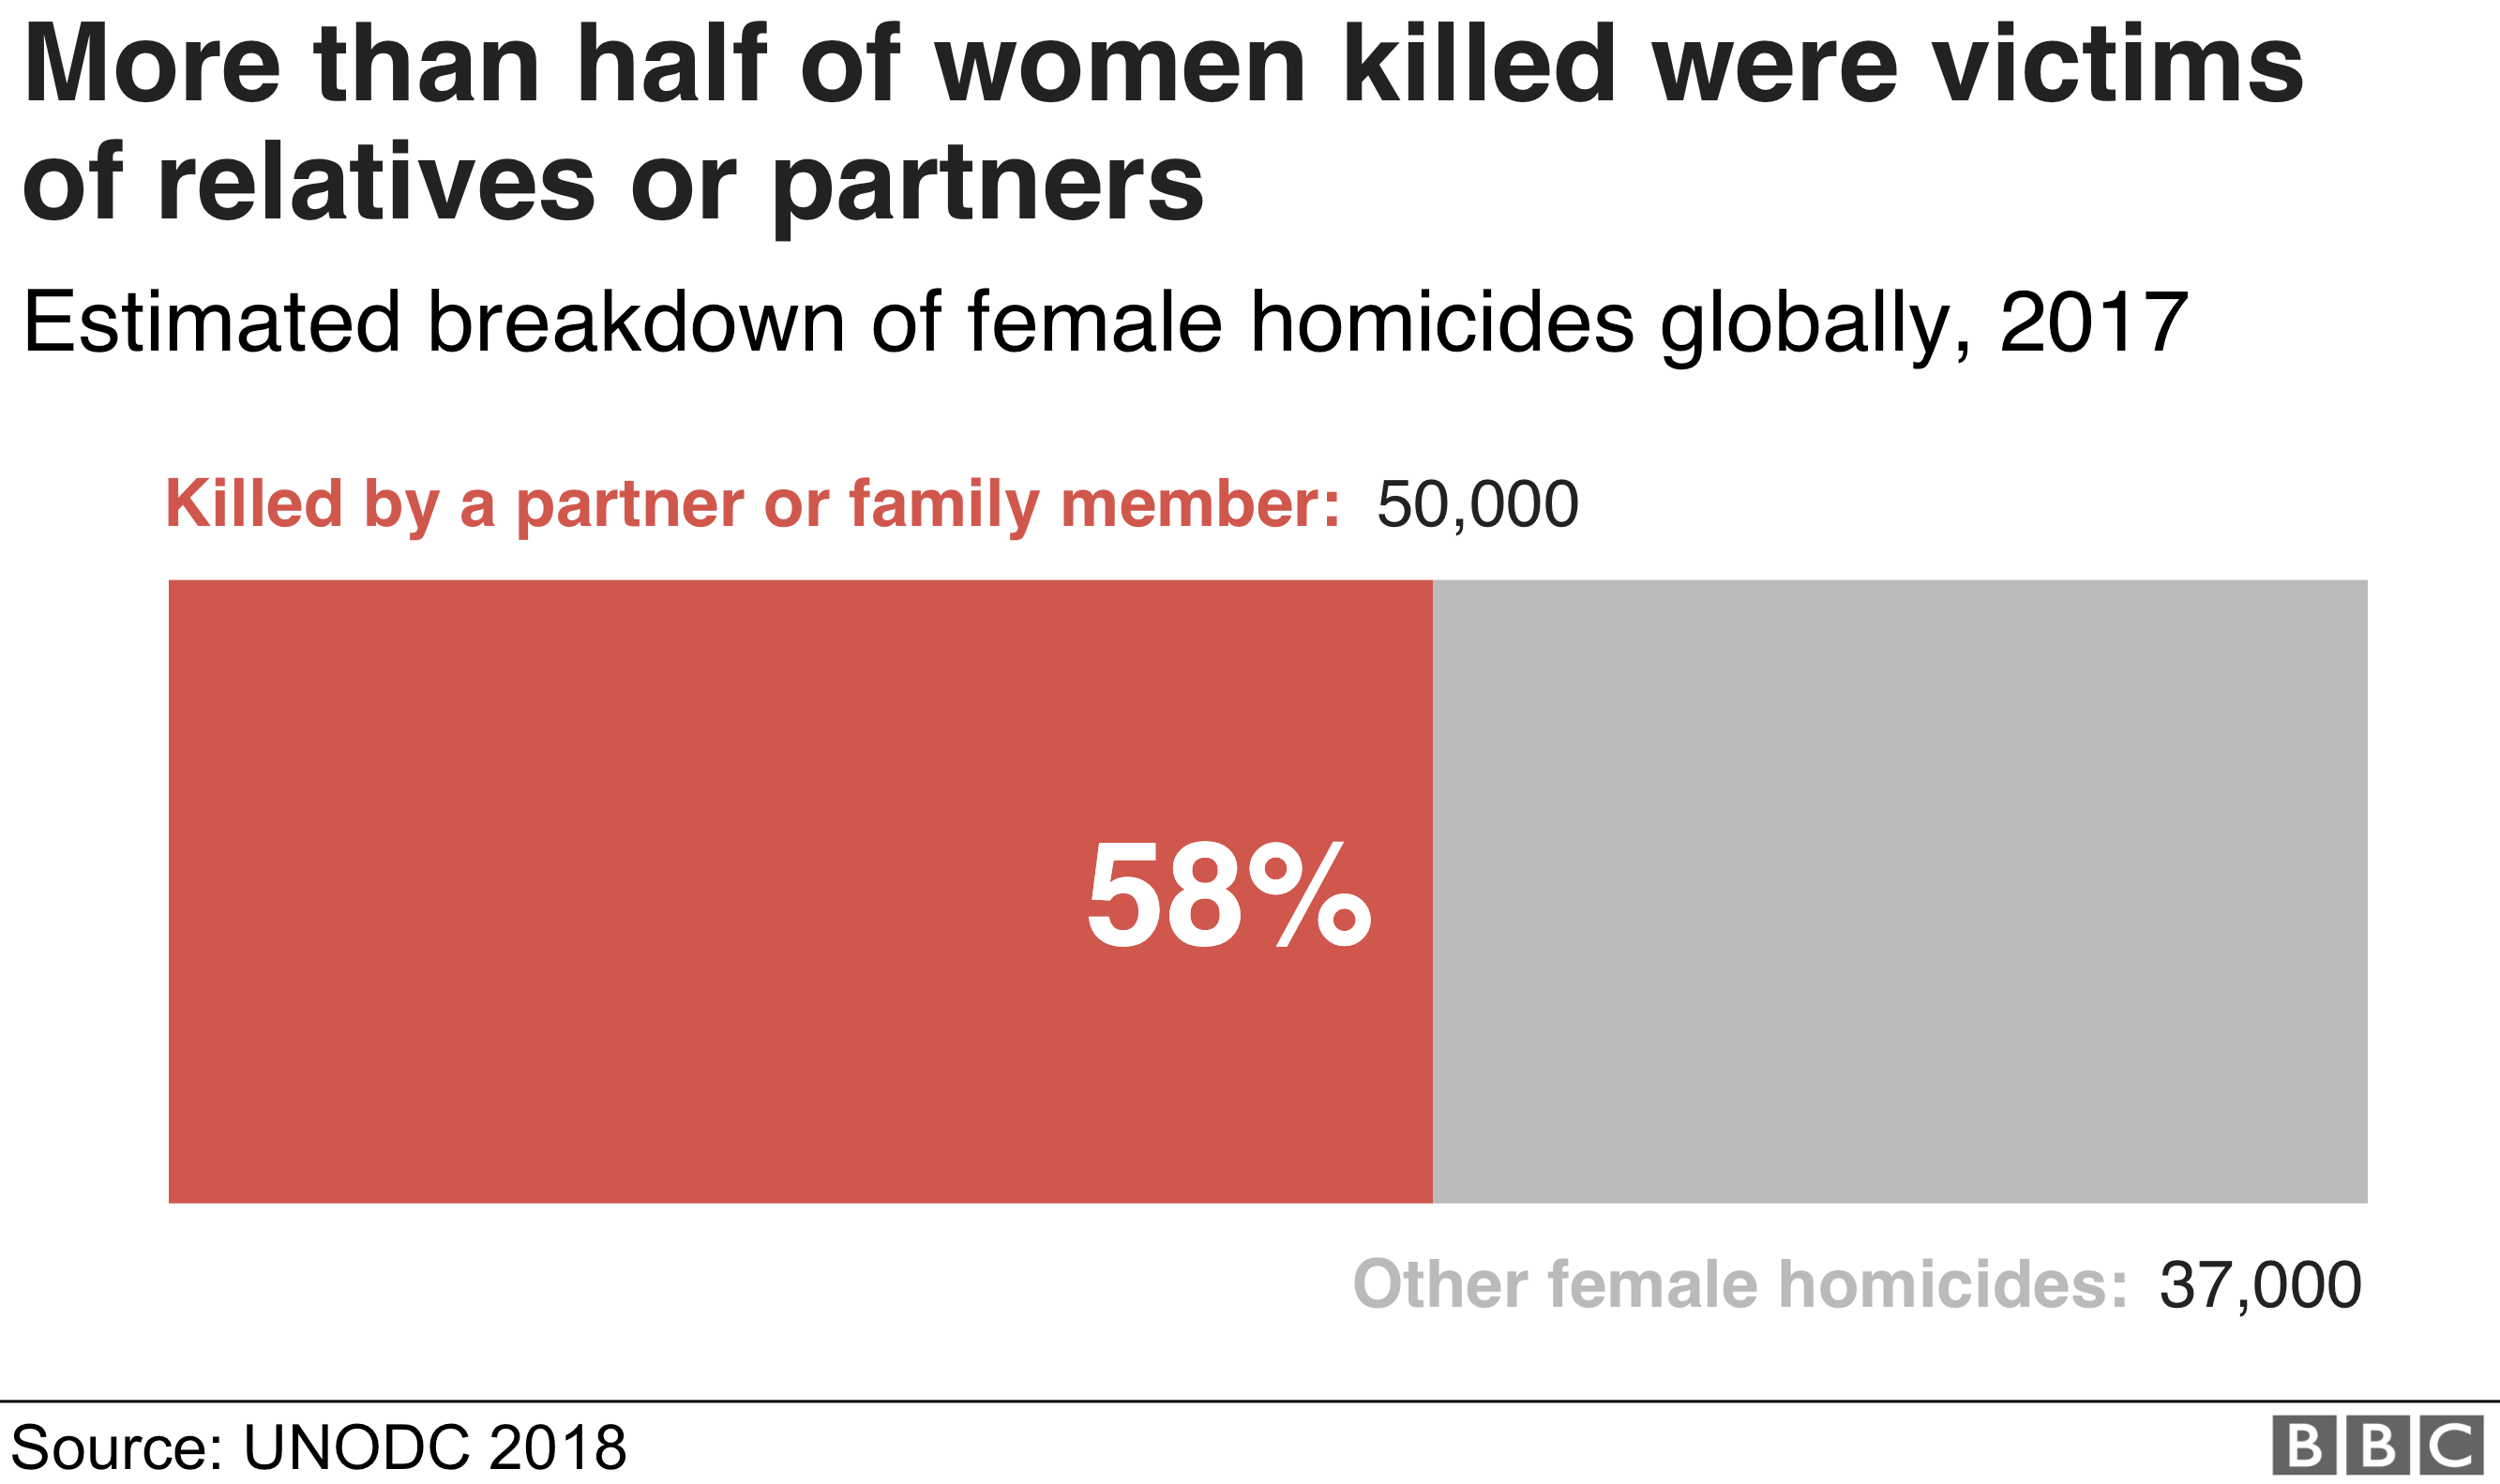 More than half of women killed were victims of relatives or partners